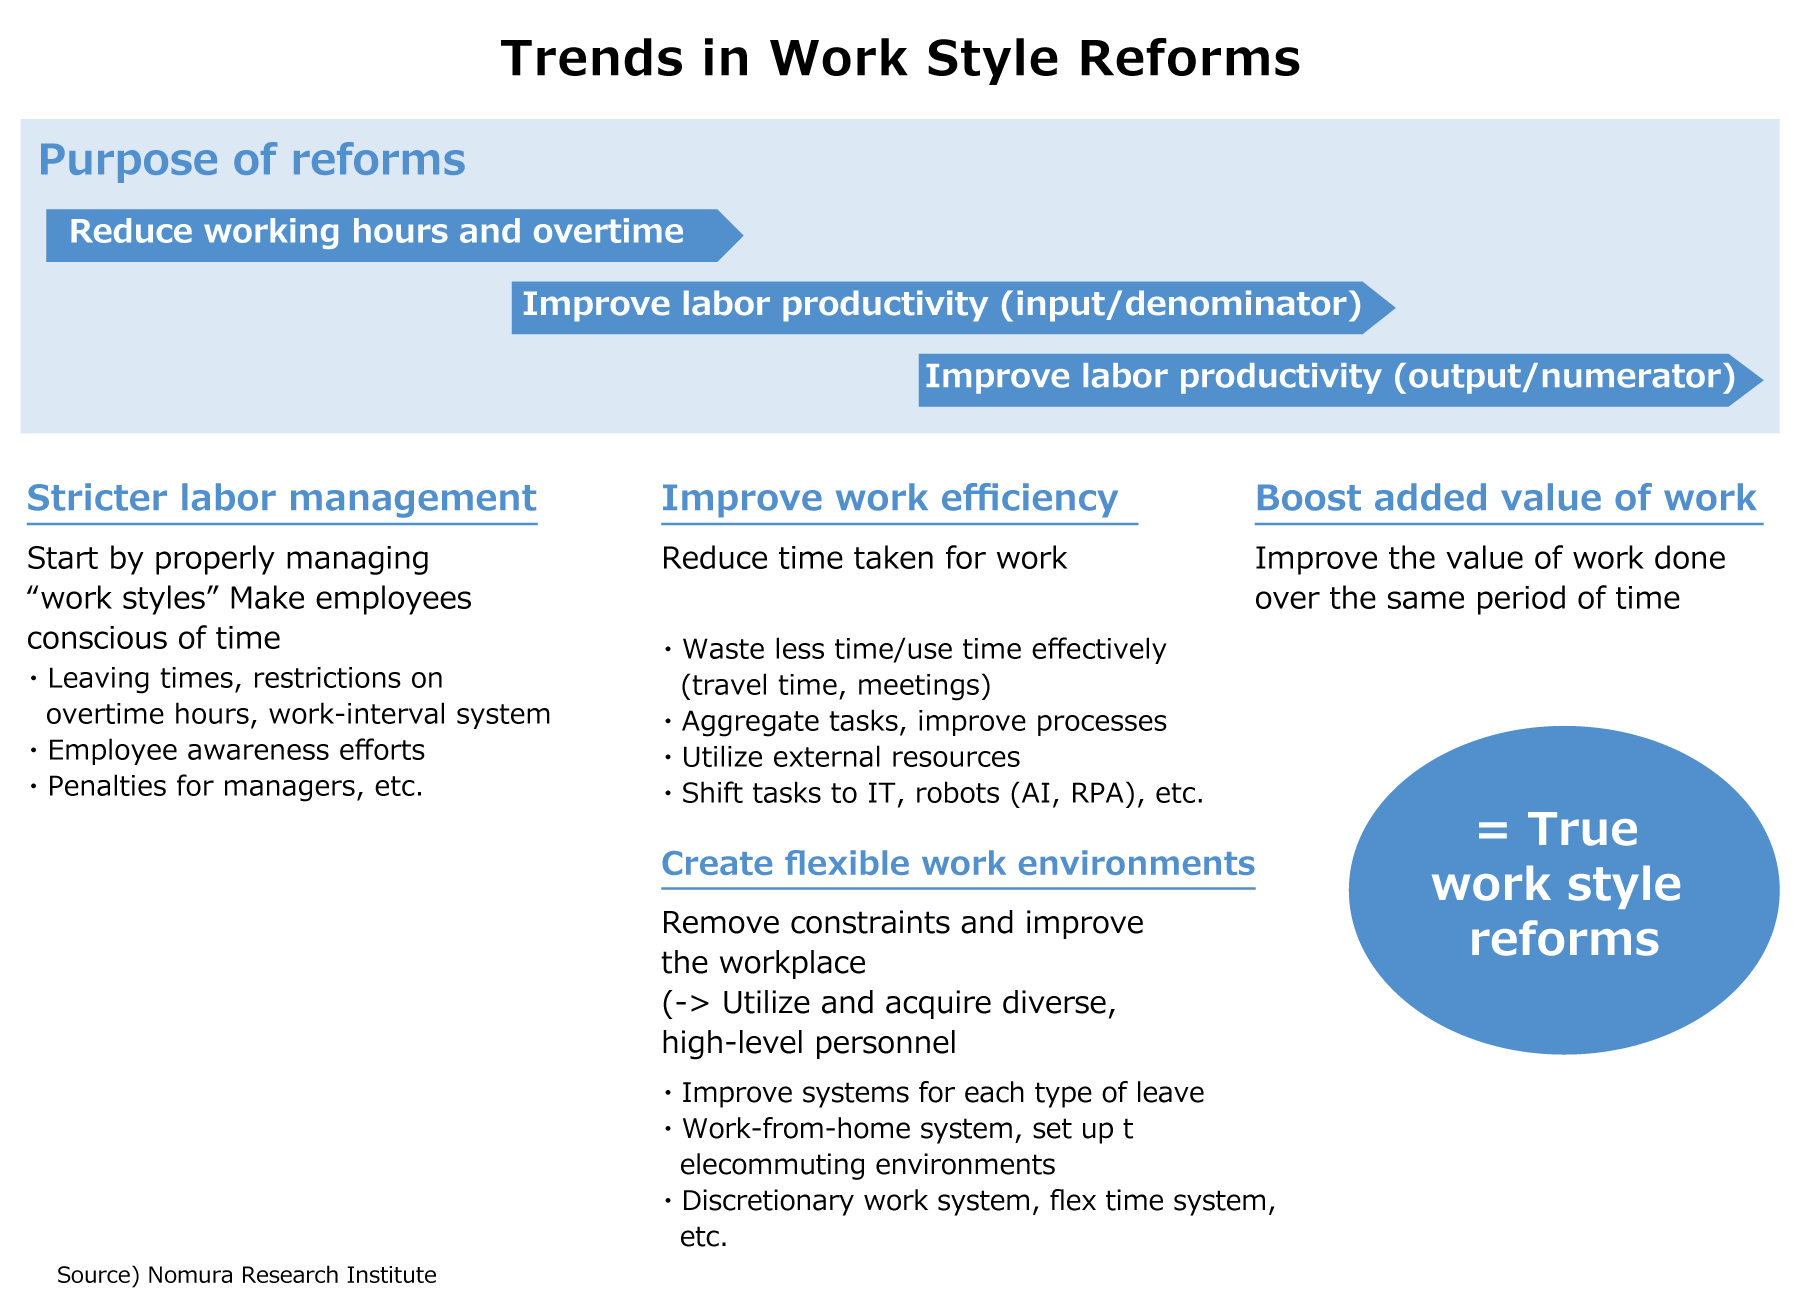 Trends in Work Style Reforms